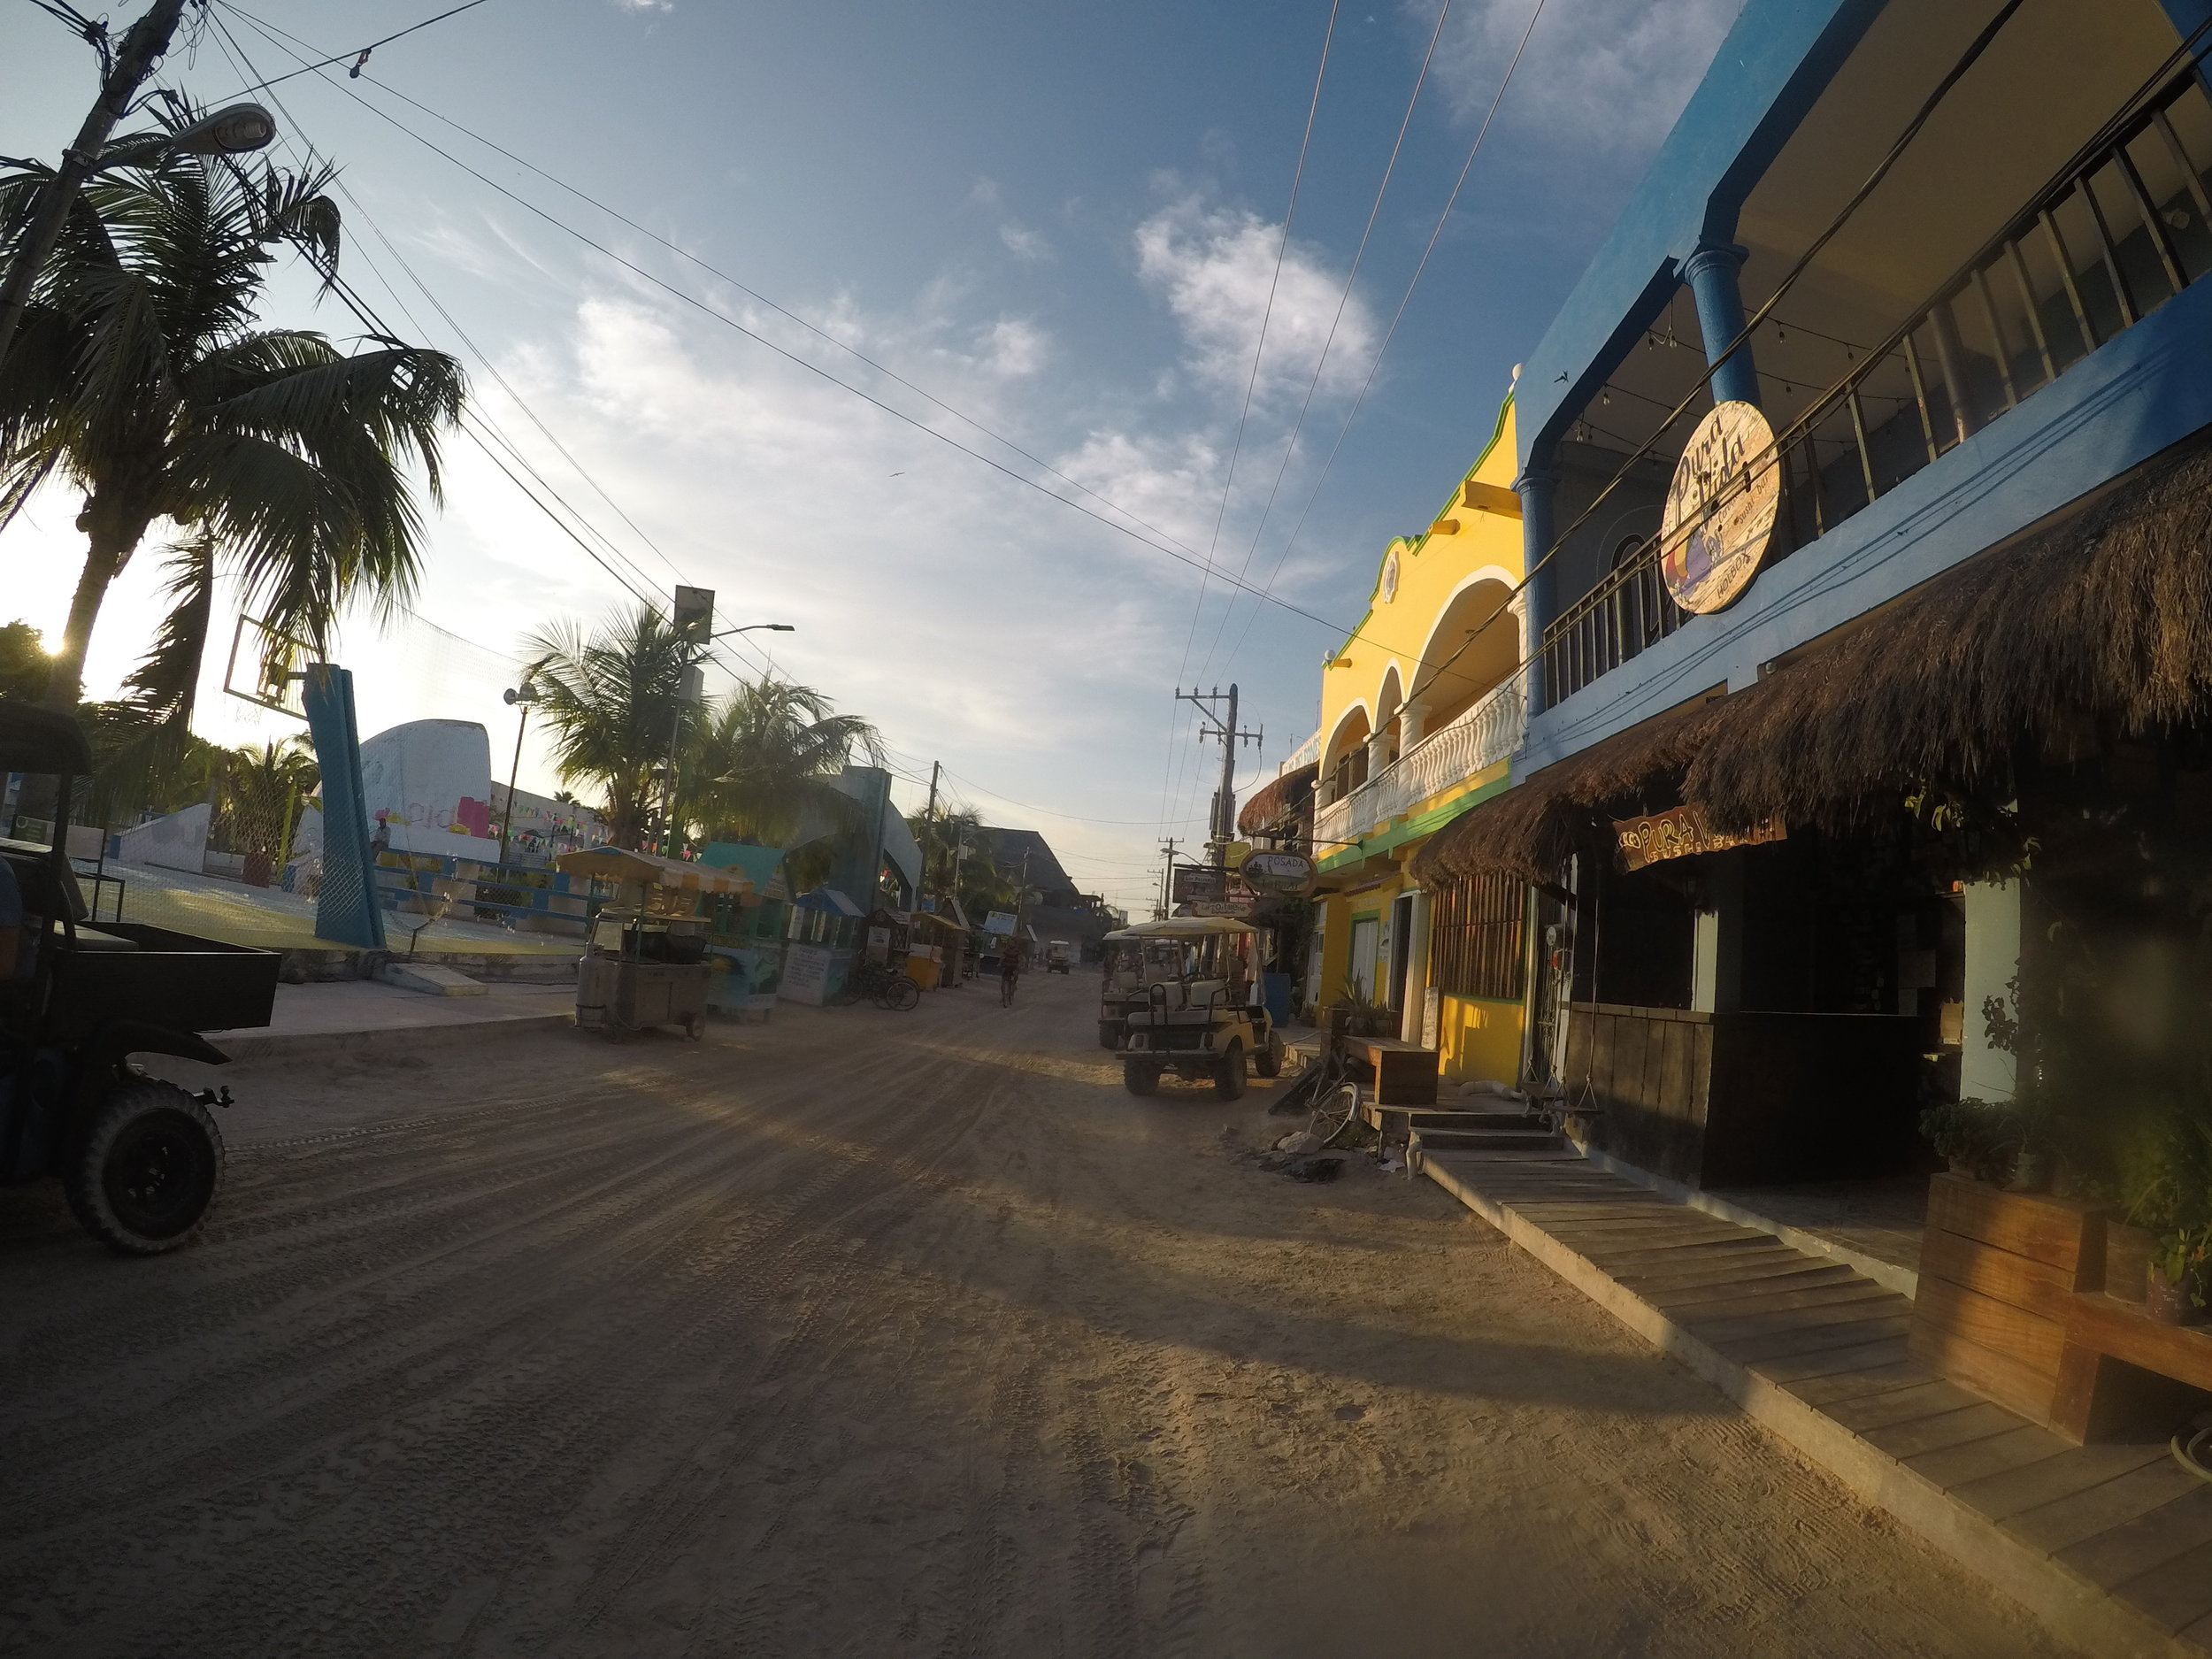 Early morning Holbox before the mass of golf carts begin to scoot around the island gathering whale shark tourists.